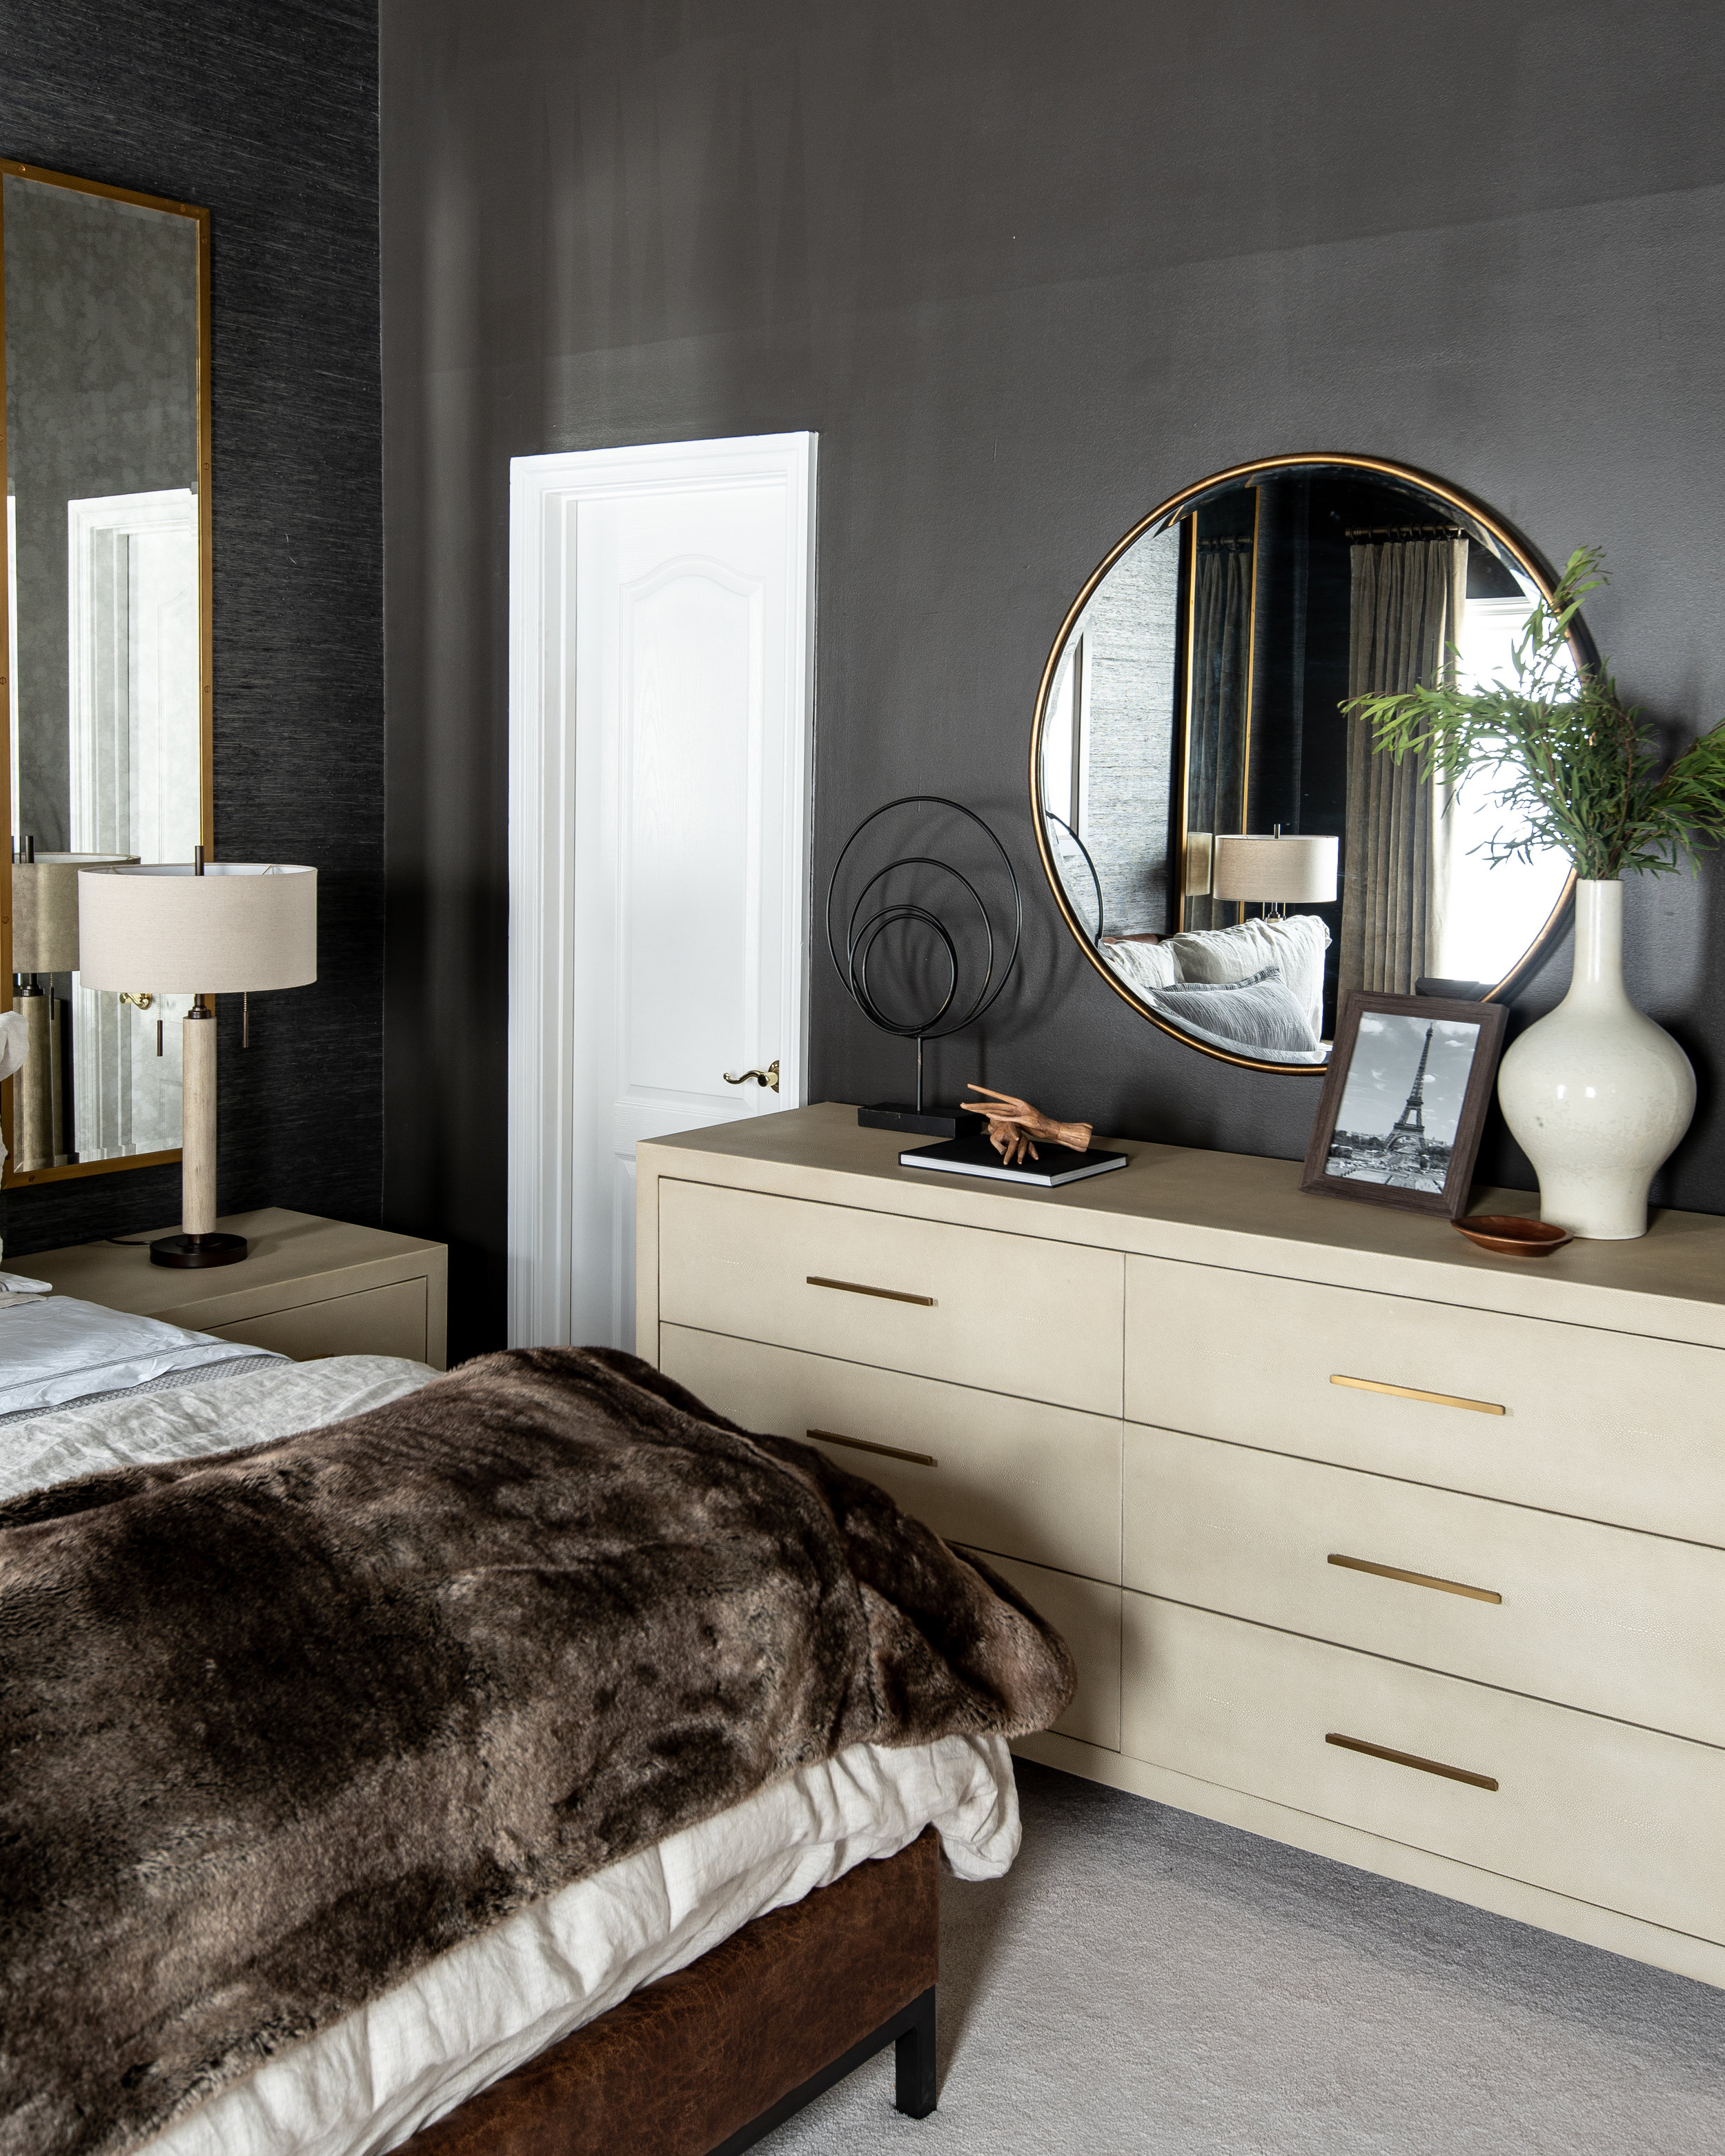 black-walls-grasscloth-wallpaper-bedroom-sexy-decor-glam-white-dresser-round-mirror.jpg